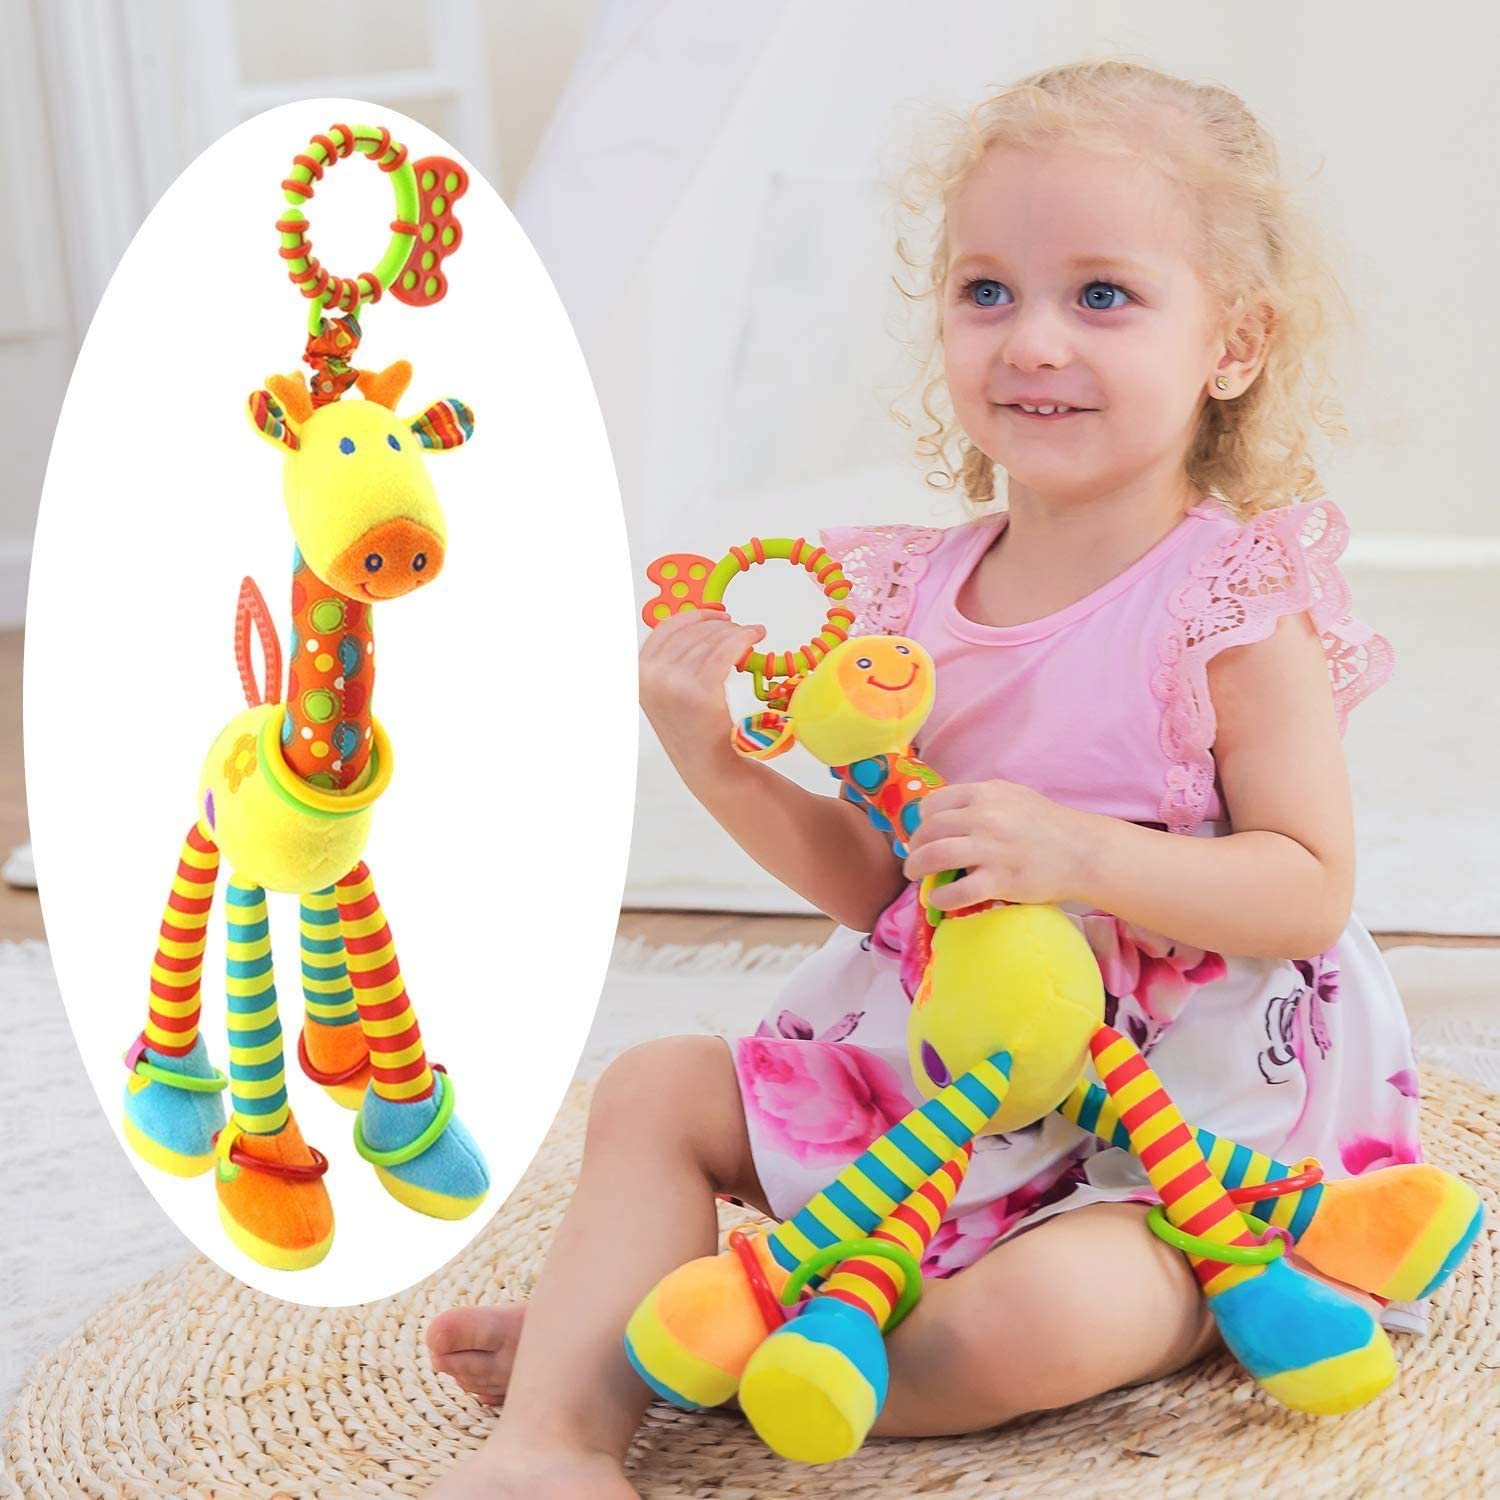 Car Seat Toys, Baby Toys 3-6 Months, Hanging Baby Toys, Stroller Toys Baby Rattles 0-11 Months for Baby Stroller Colorful Animal Bell Rattle for Infants Sensory Toys Baby Musical Toys Soft Kids Crib